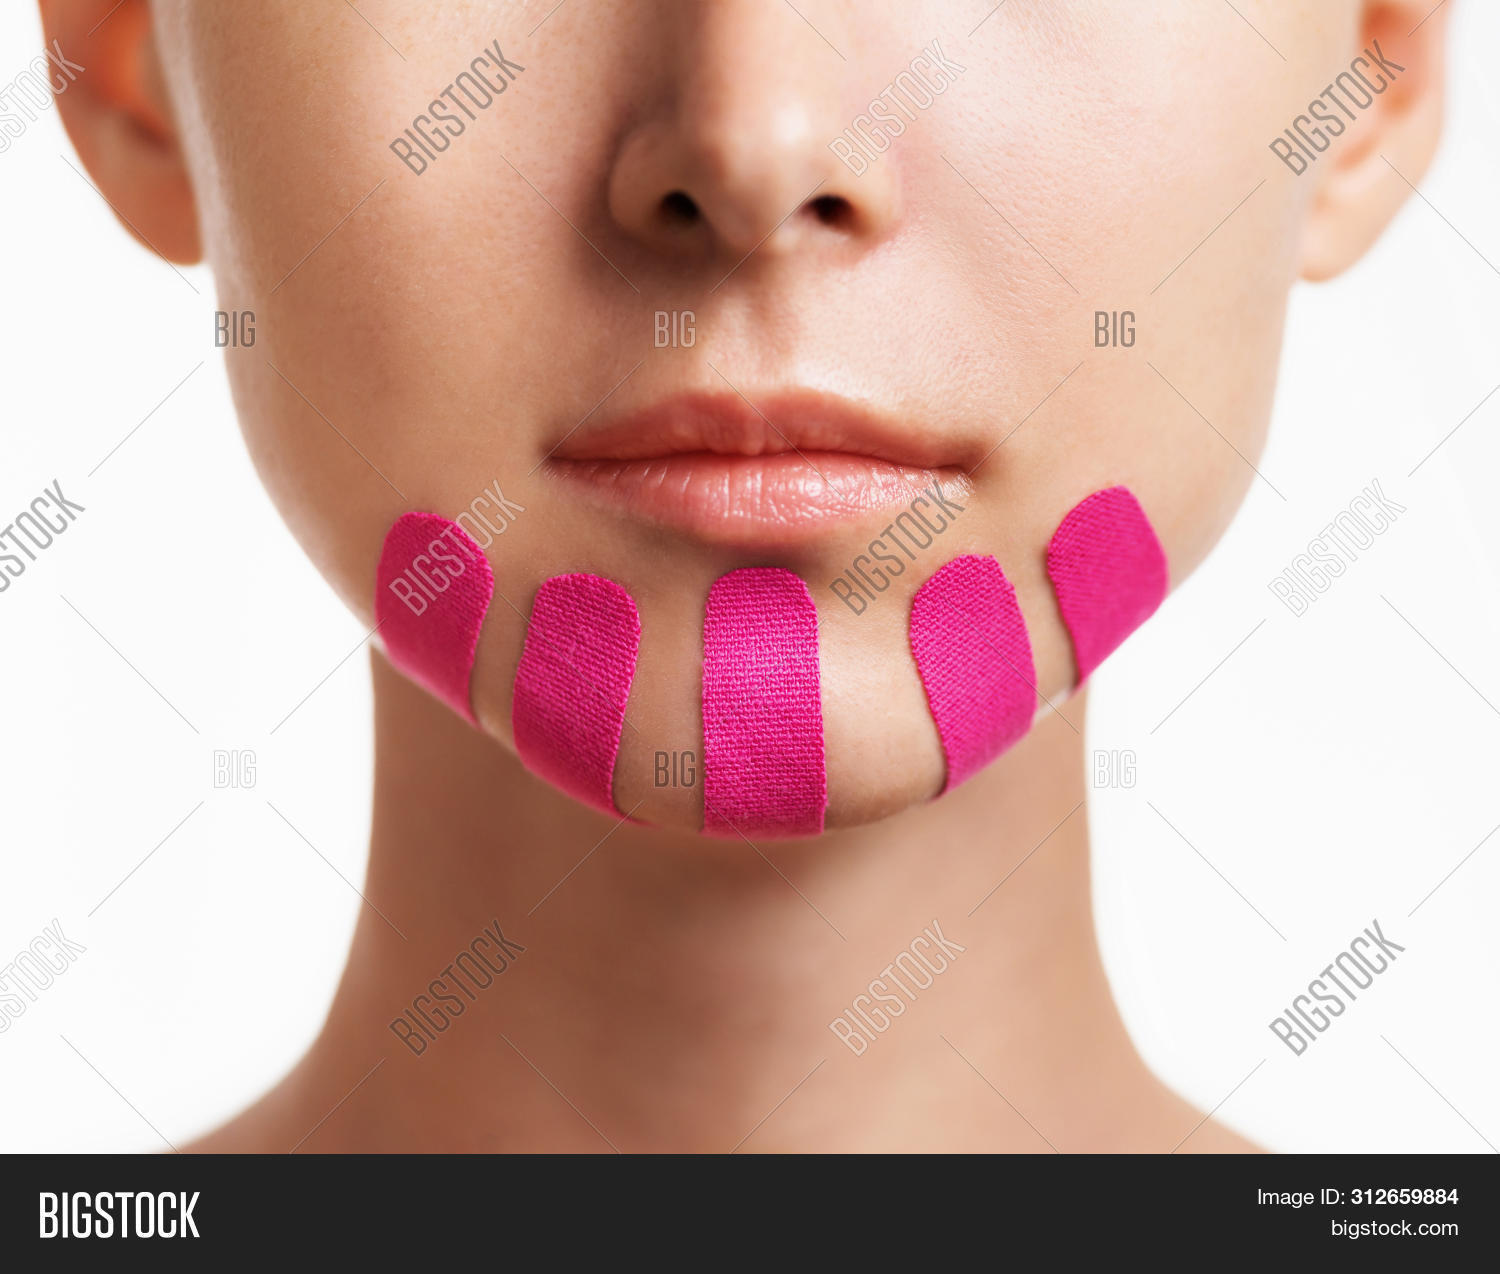 adult,anti-aging,applique,beautiful,beauty,care,chin,closeup,cosmetology,face,facelift,female,front,girl,health,kinesio,kinesiology,medicine,one,pink,procedure,skin,tape,treatment,unrecognizable,wellness,woman,wrinkle,young